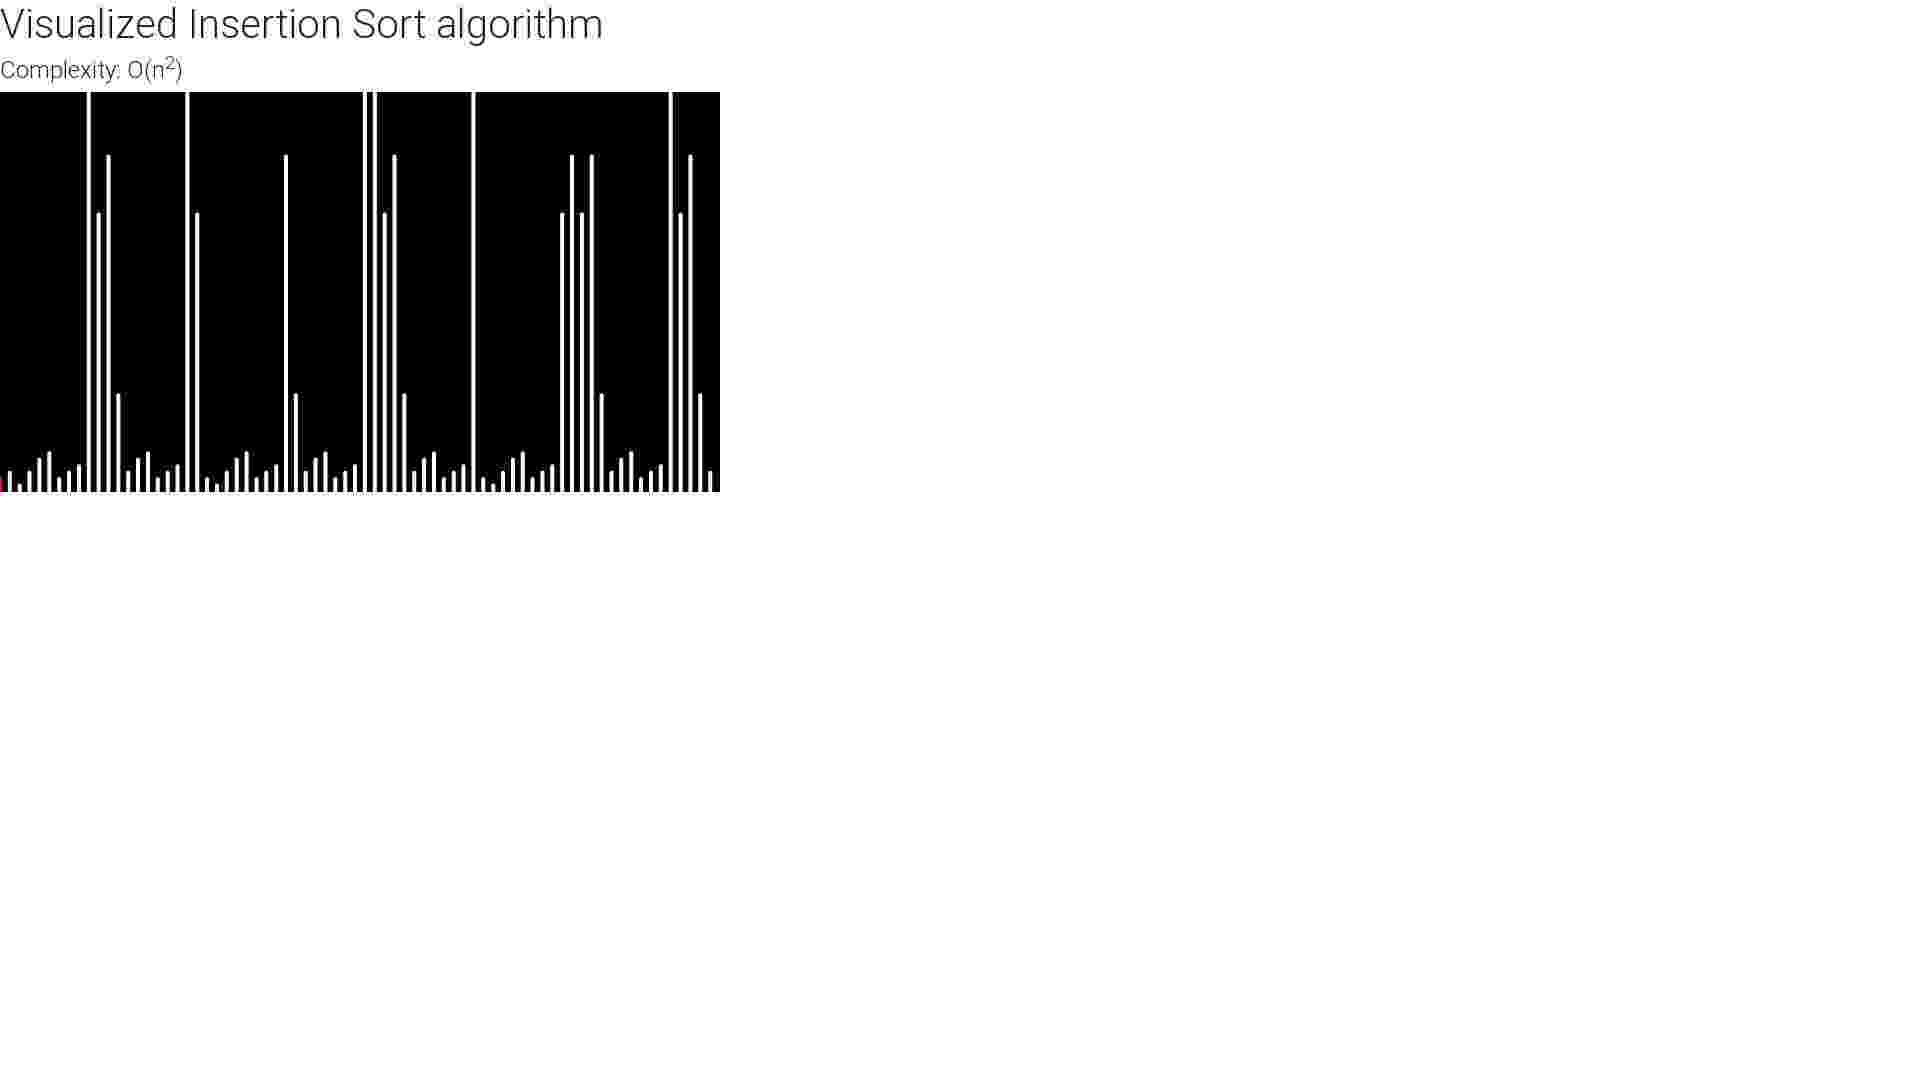 Visualization of Insertion Sort with p5.js